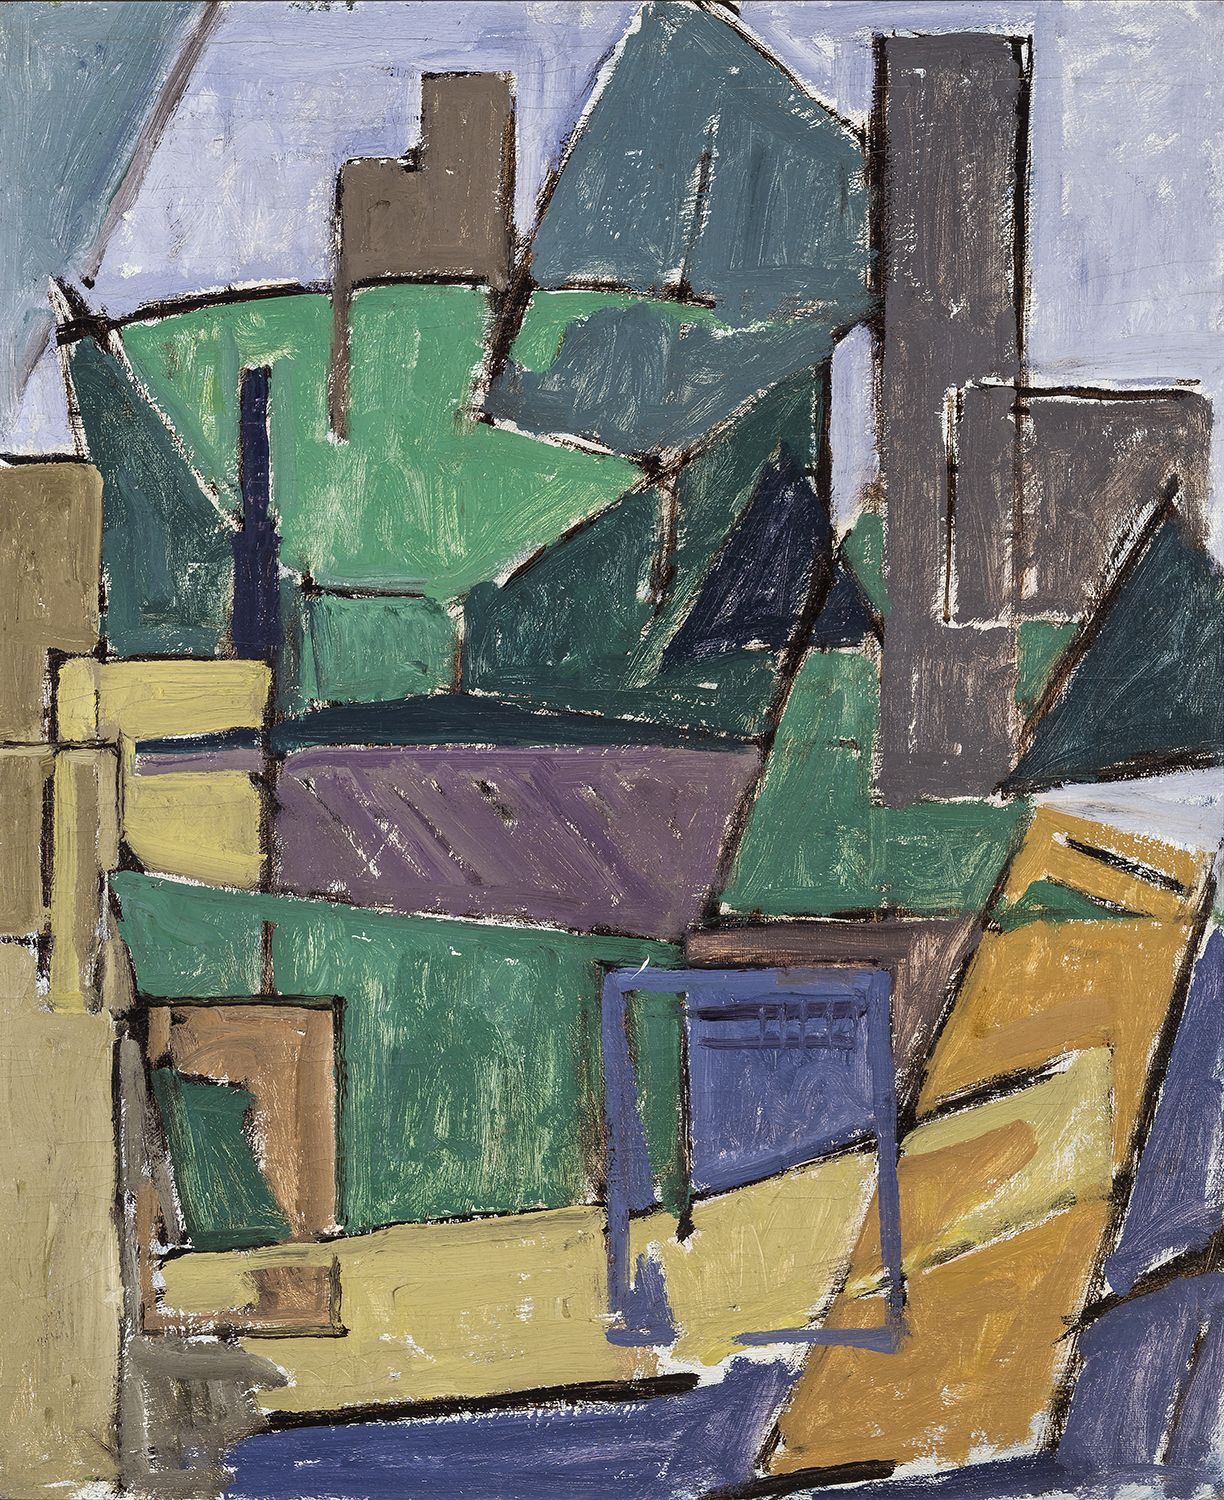 House and Tree Shapes, about 1916, Oil on canvas, 23 x 19 in.